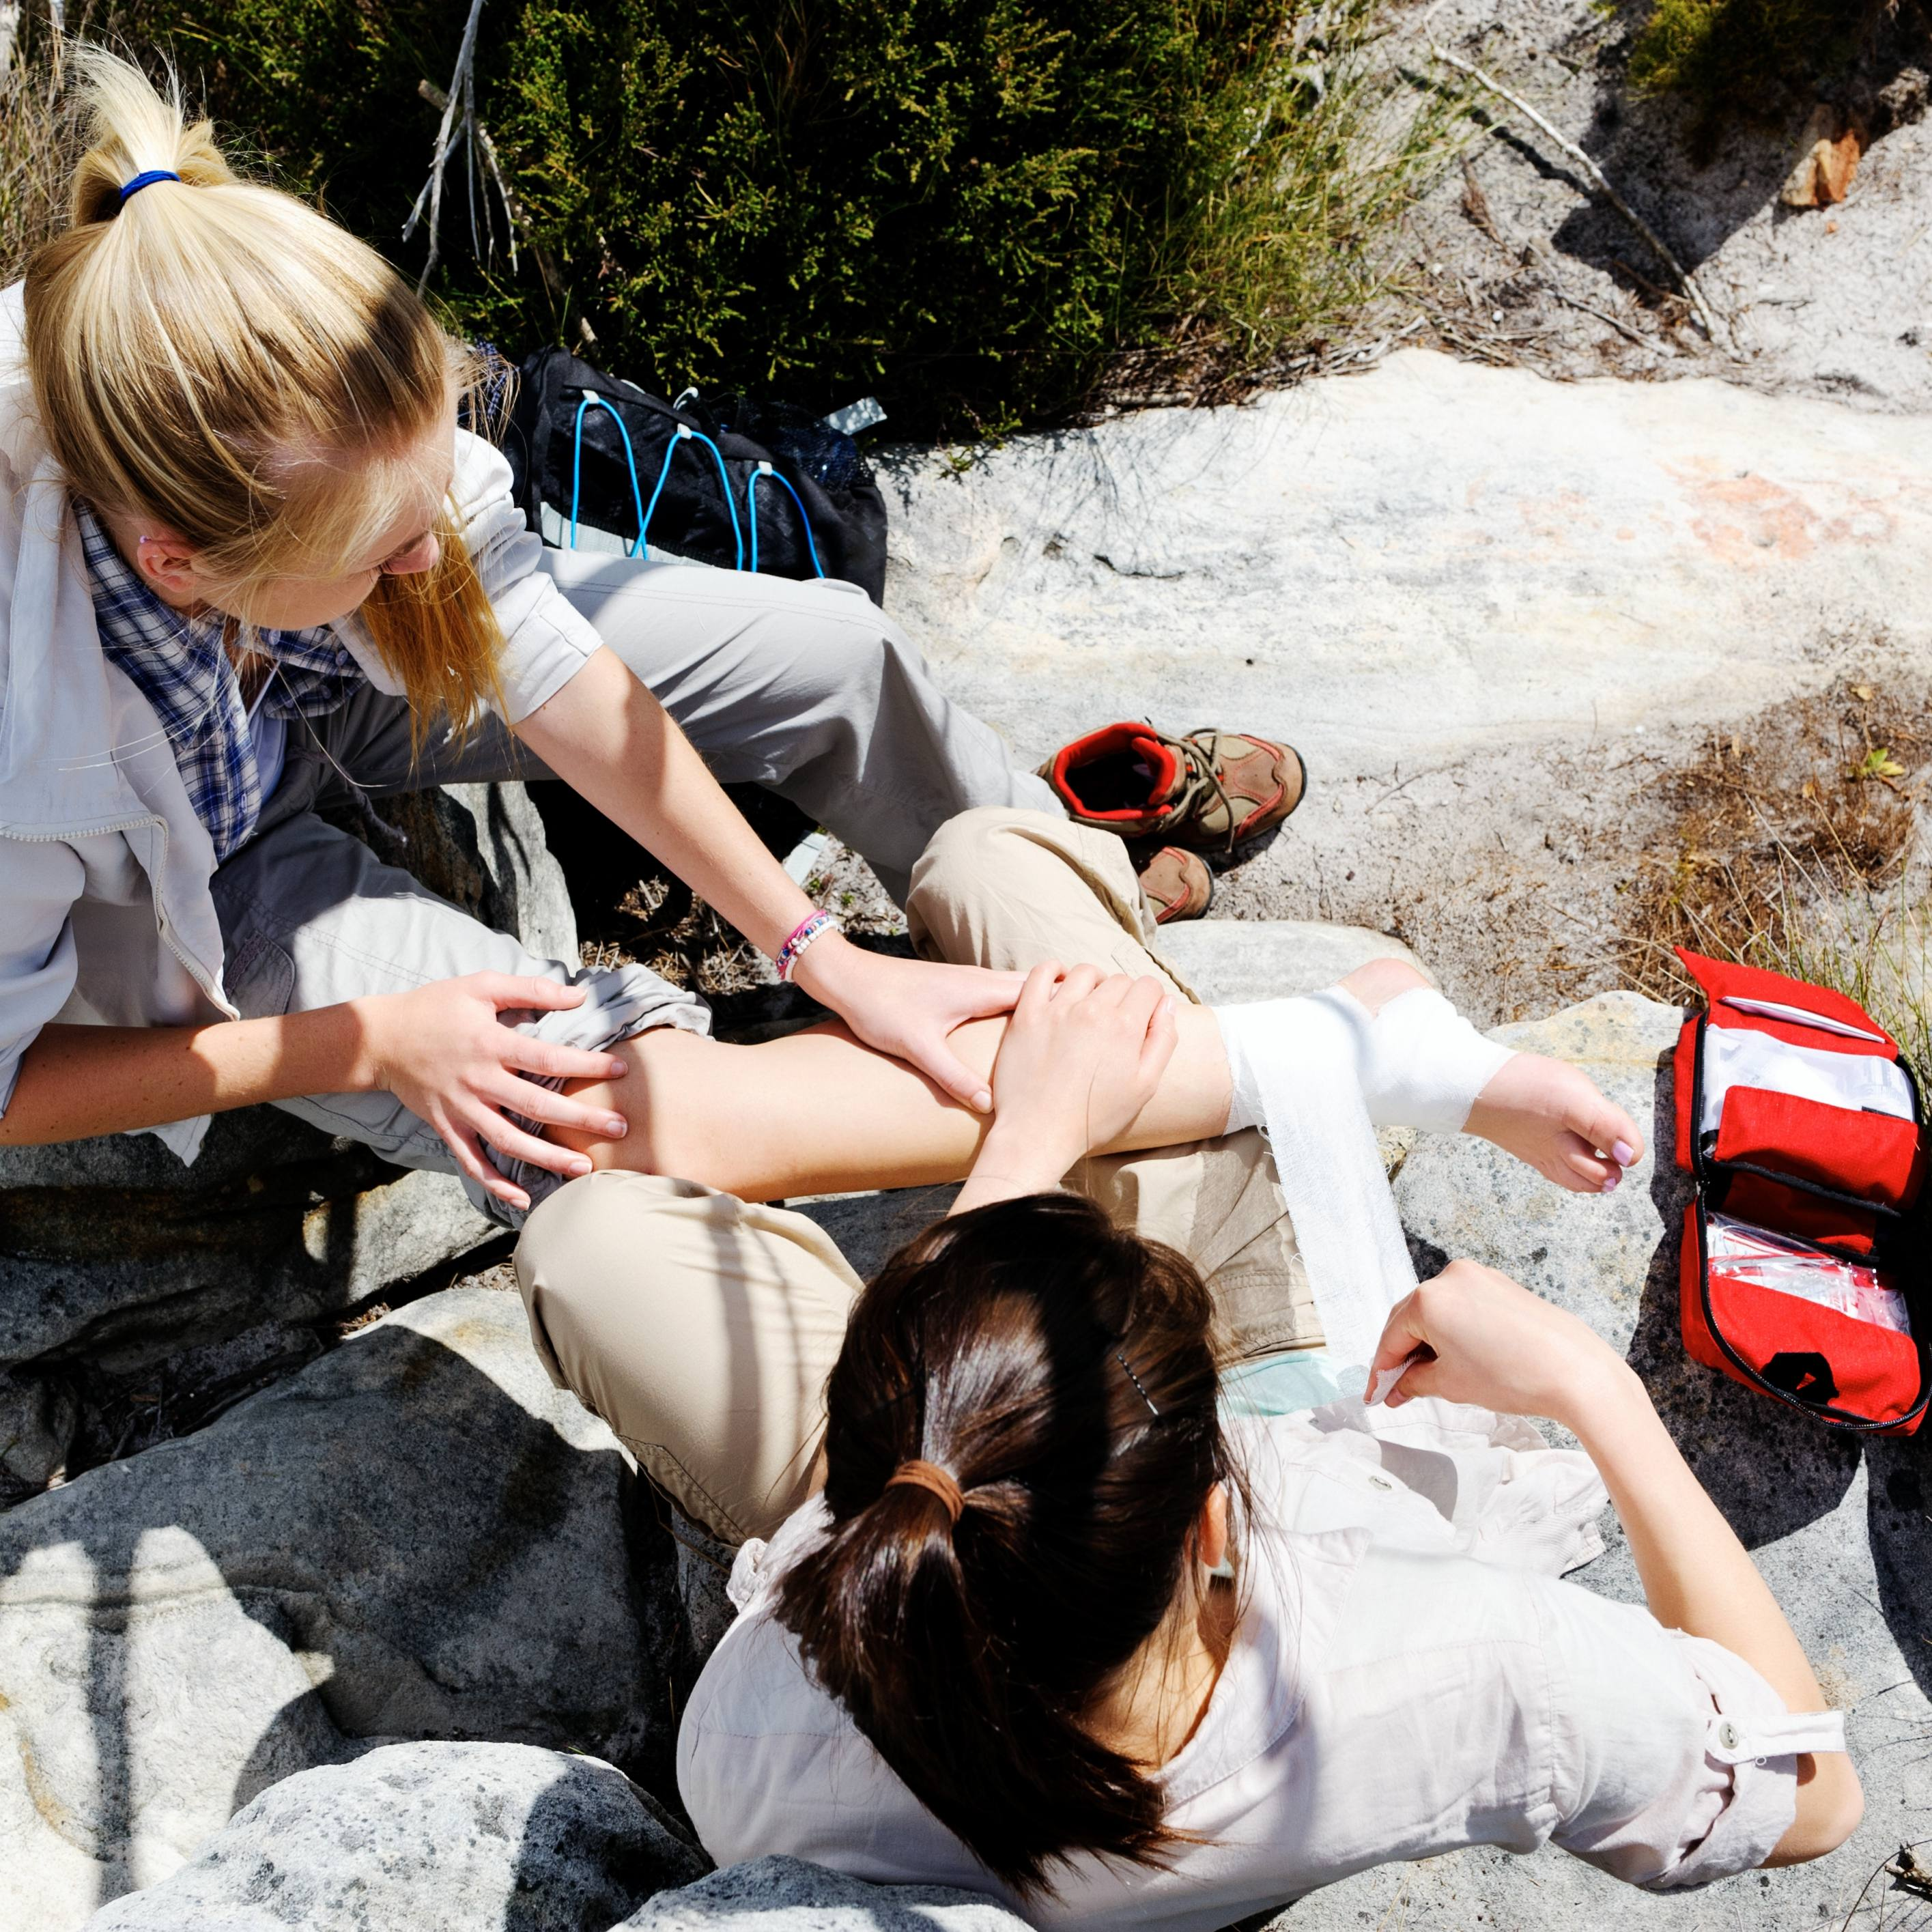 A woman has sprained her ankle while hiking, her friend uses the first aid kit to tend to the injury